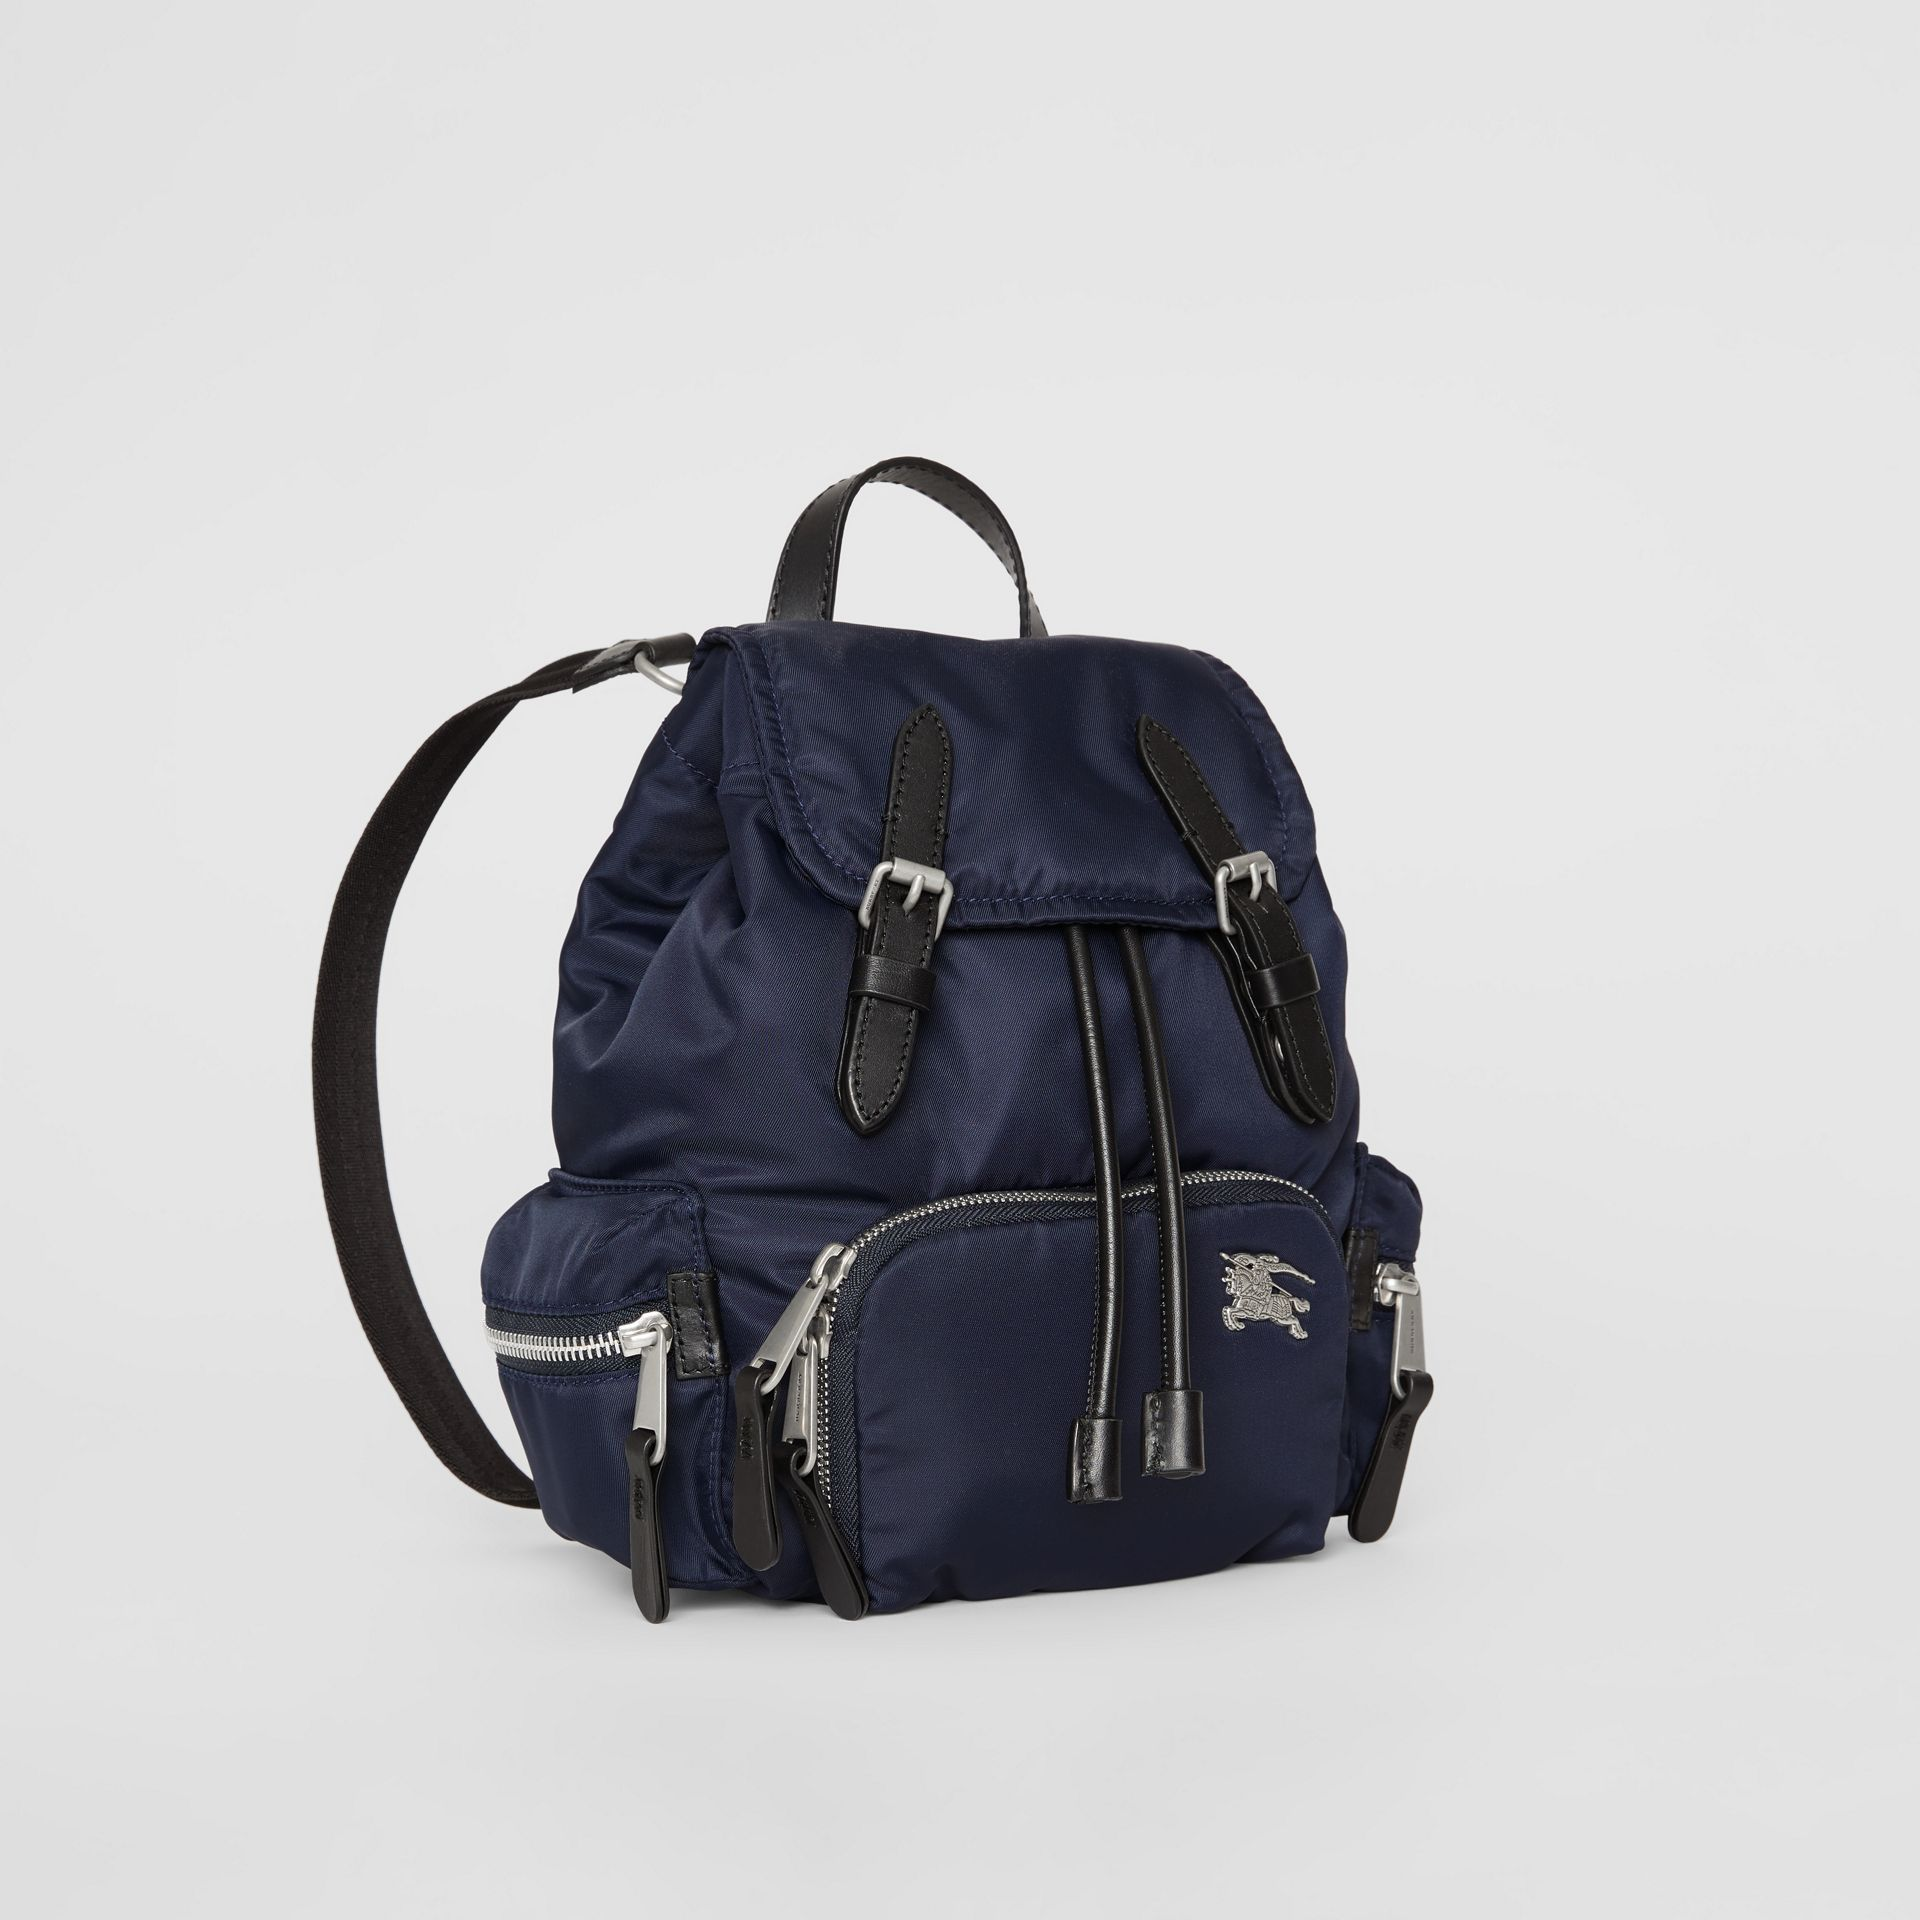 The Small Crossbody Rucksack in Puffer Nylon in Ink Blue - Women | Burberry - gallery image 7